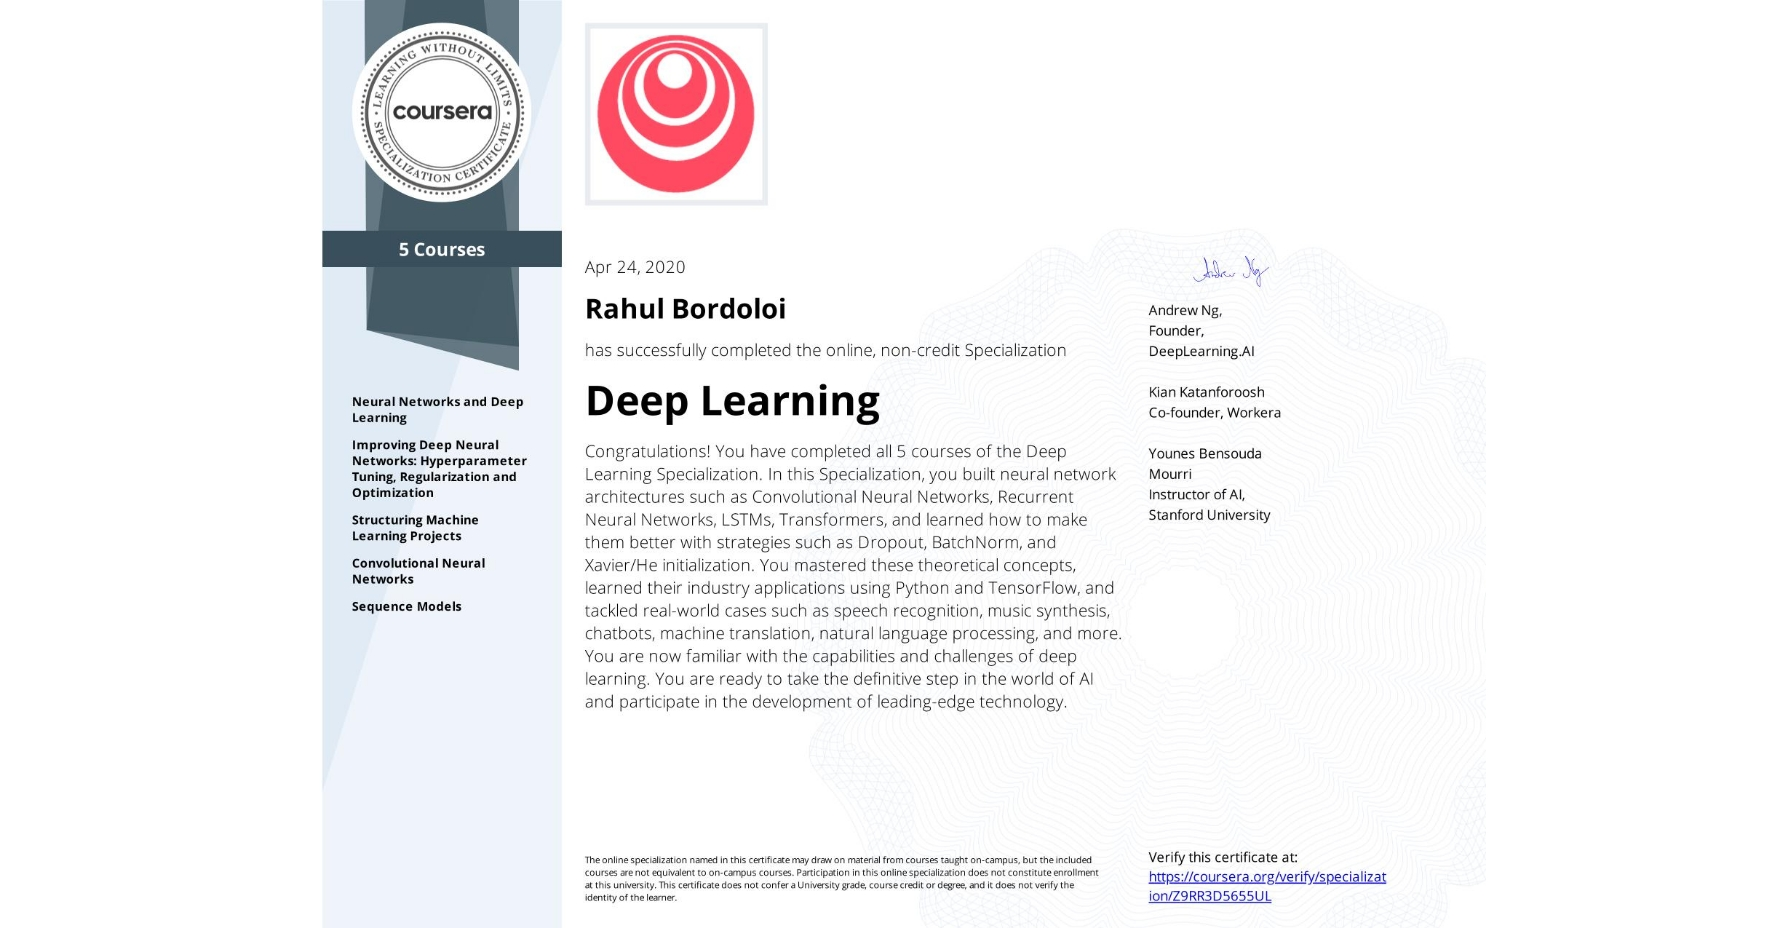 View certificate for Rahul Bordoloi, Deep Learning, offered through Coursera. The Deep Learning Specialization is designed to prepare learners to participate in the development of cutting-edge AI technology, and to understand the capability, the challenges, and the consequences of the rise of deep learning. Through five interconnected courses, learners develop a profound knowledge of the hottest AI algorithms, mastering deep learning from its foundations (neural networks) to its industry applications (Computer Vision, Natural Language Processing, Speech Recognition, etc.).